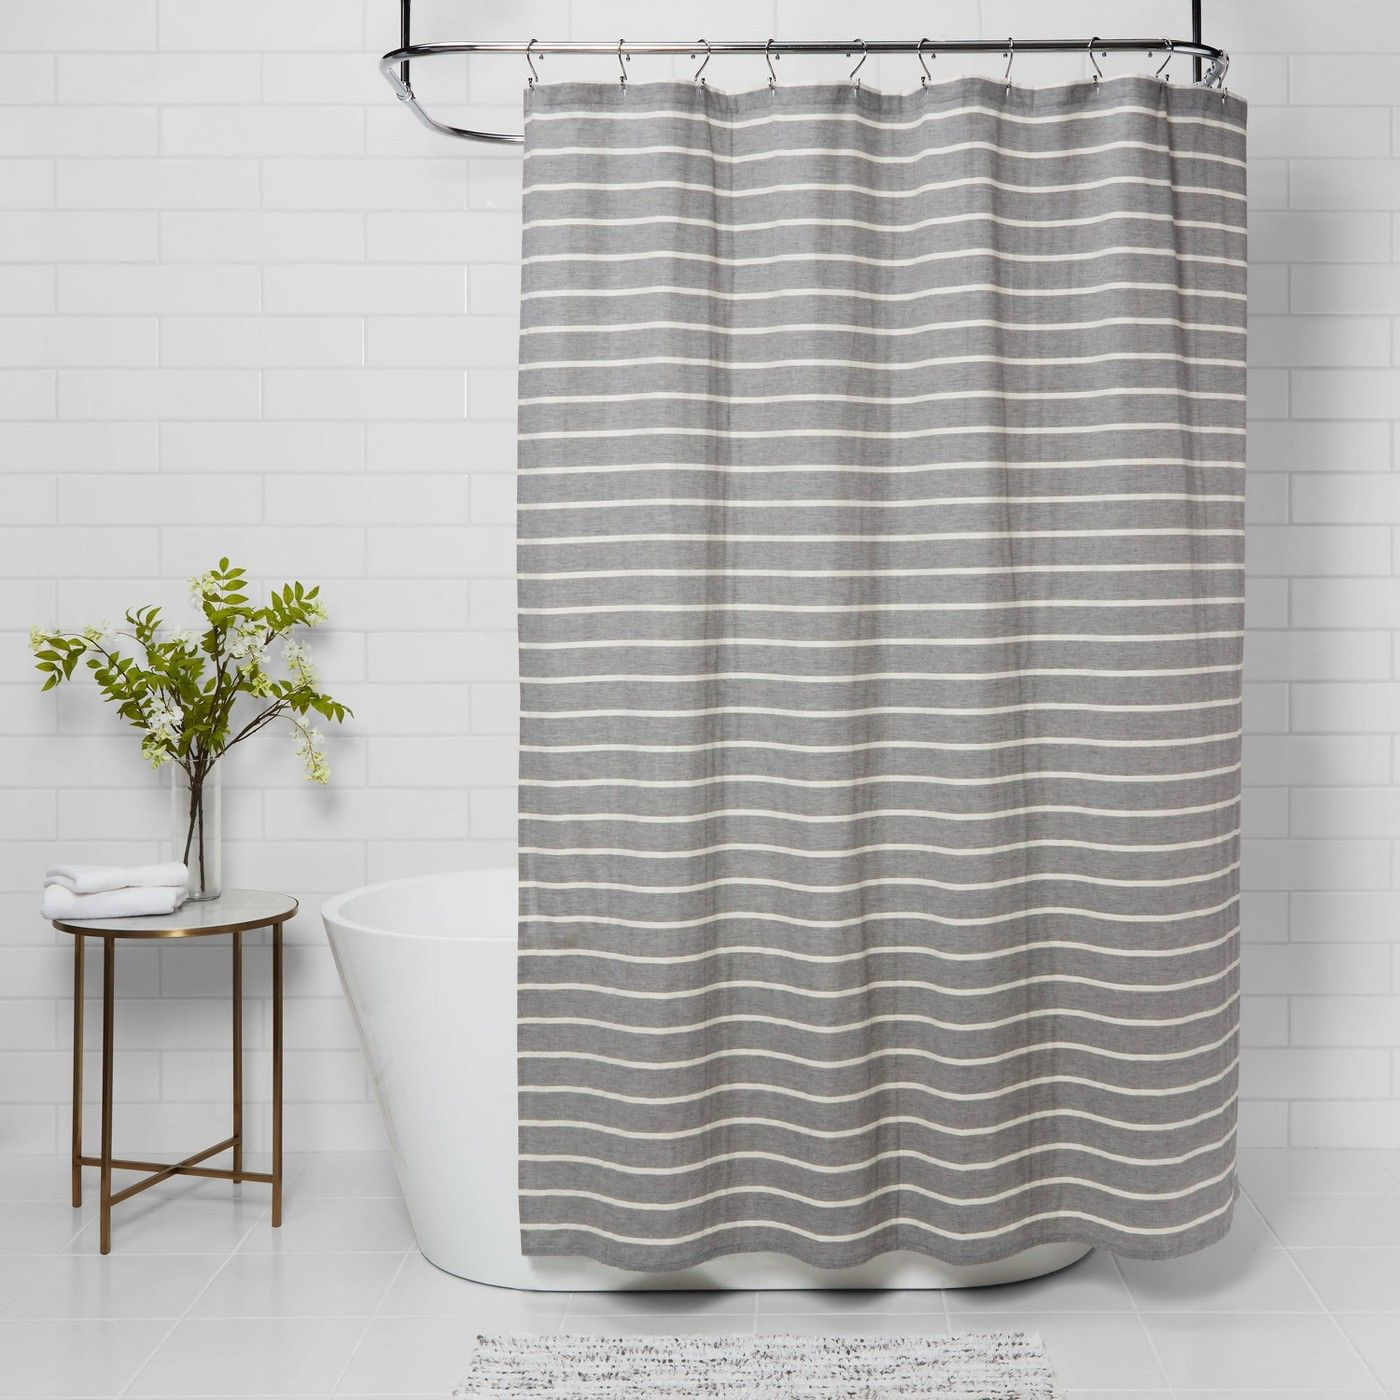 Stripe Shower Curtain Threshold In 2020 Striped Shower Curtains Scandinavian Shower Curtains Shower Curtain Decor